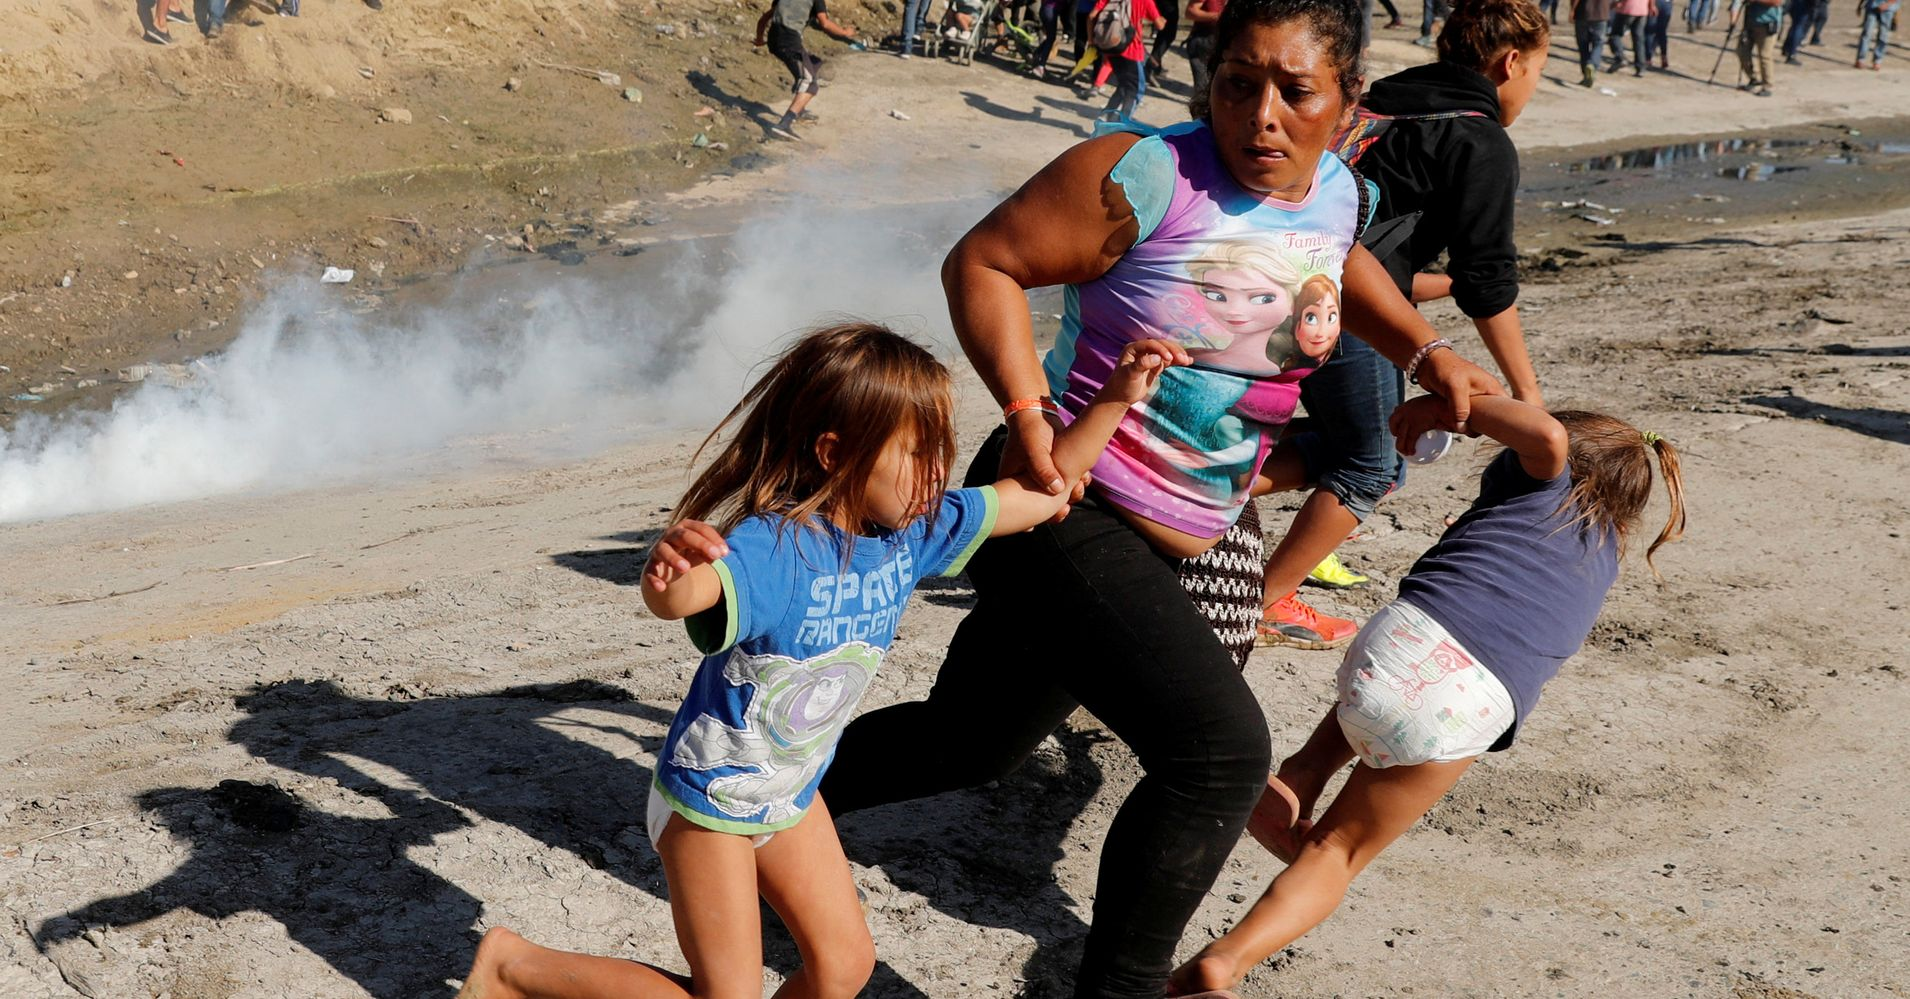 Image result for migrant child fence cage tear gas fleeing